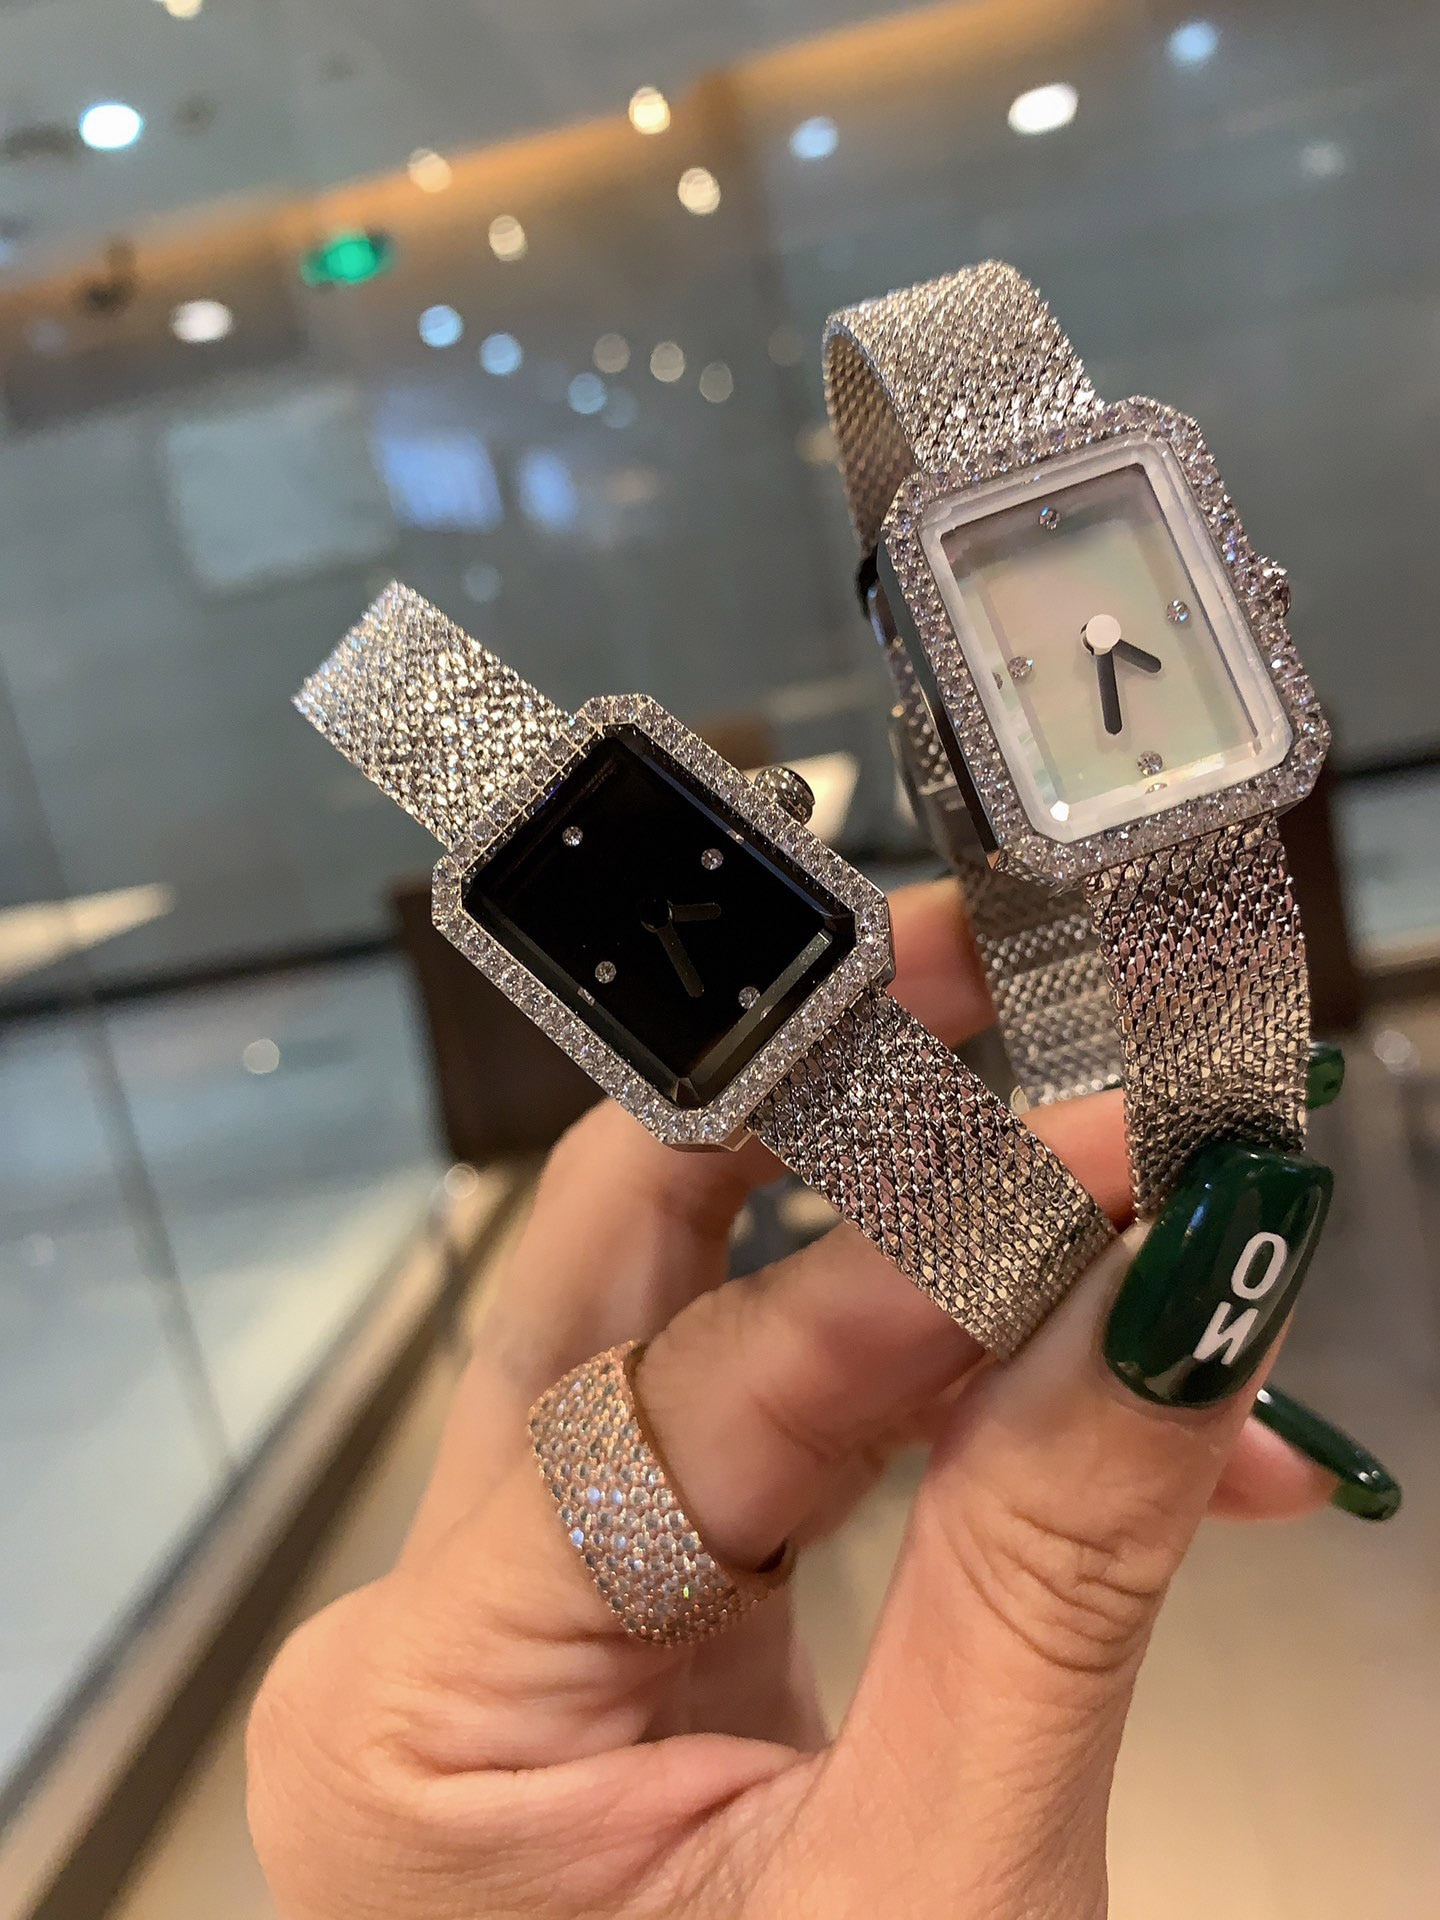 2021 brand timepieces, ladies C watches, fashion rose gold formal watches, gifts for girls at the banquet party enlarge